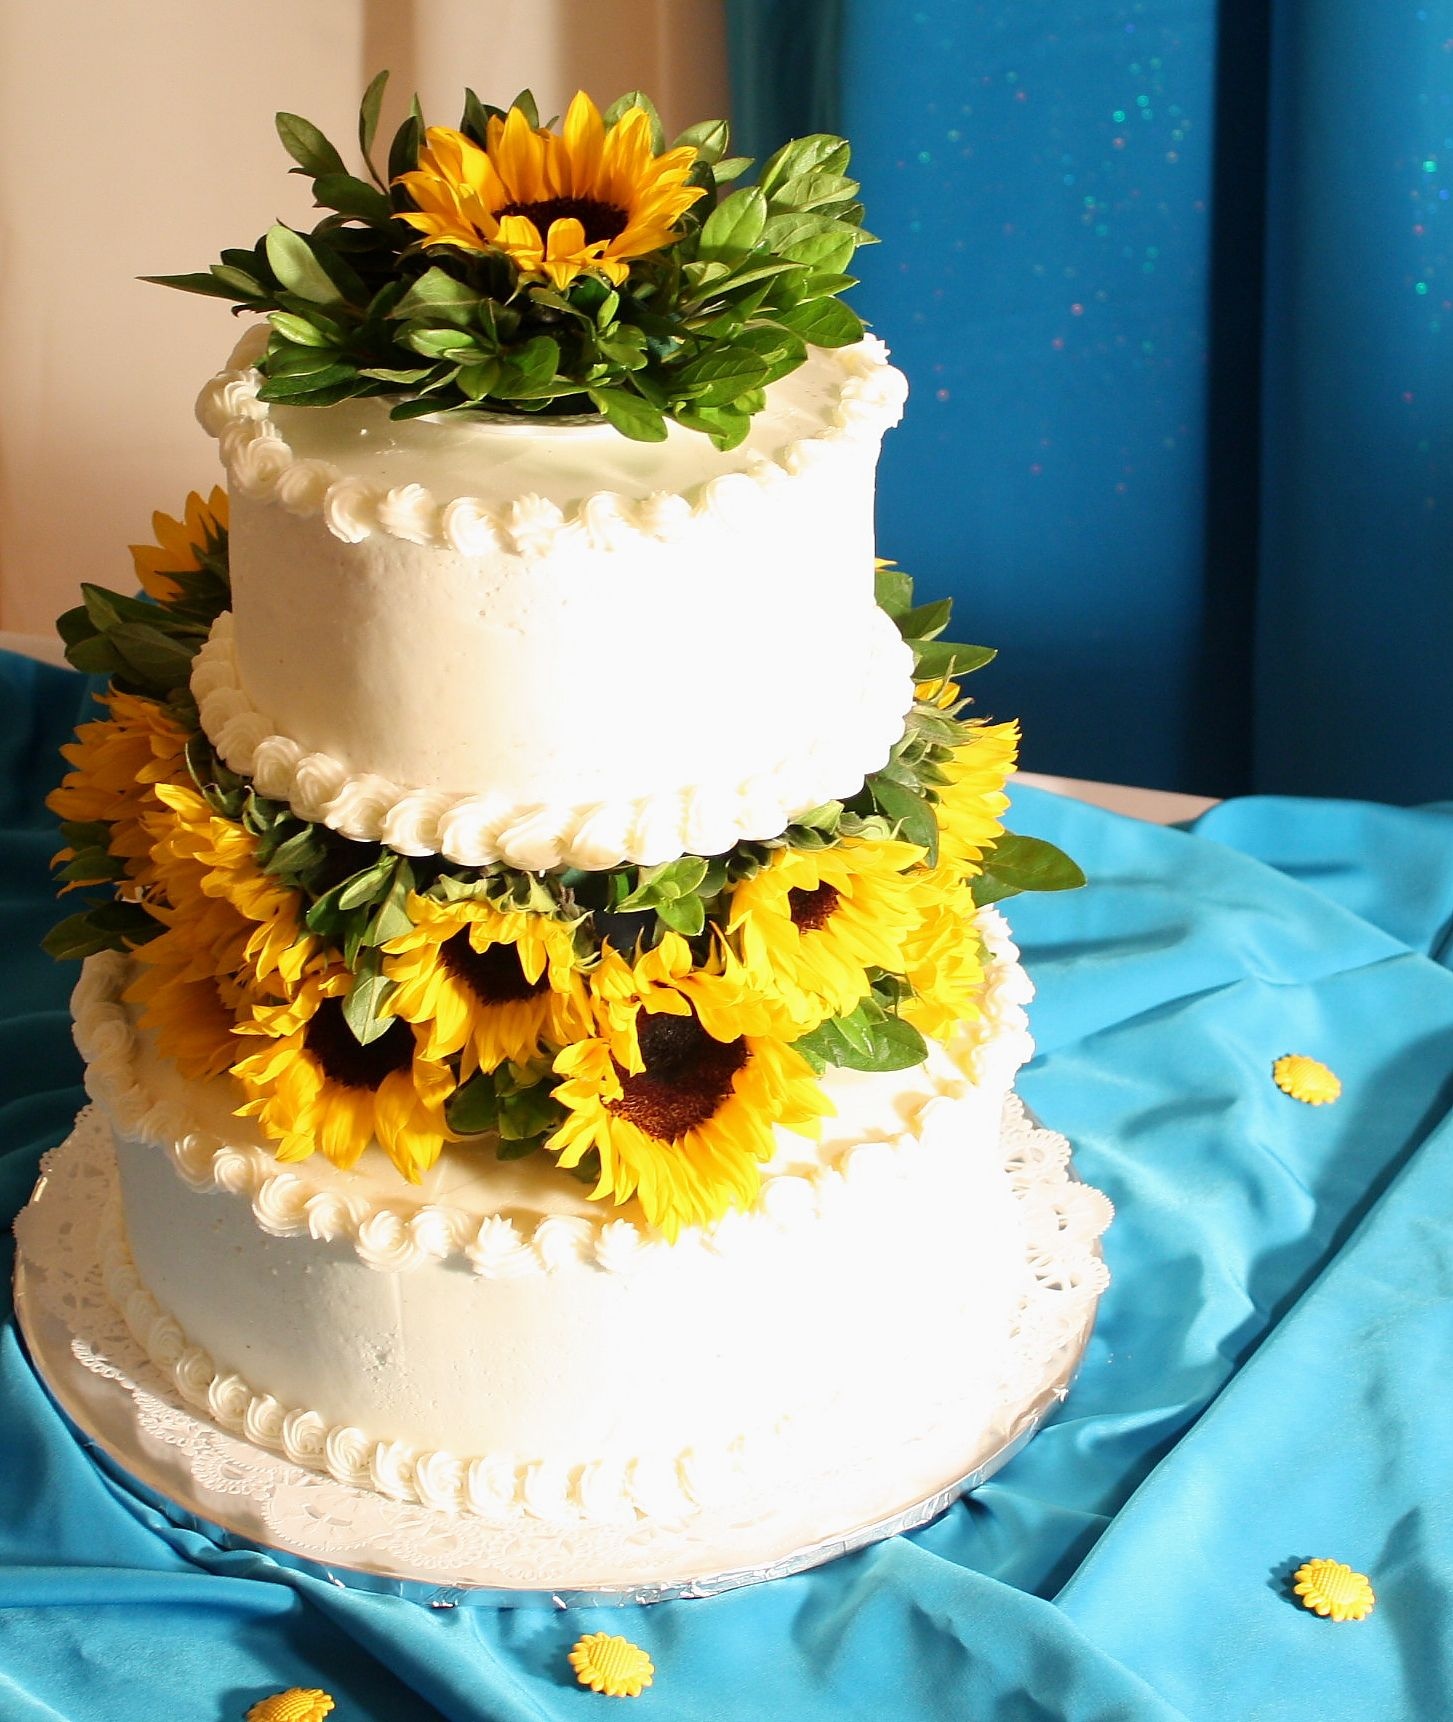 Sunflower Wedding Cake Ideas: Daisy & Sunflower Cakes